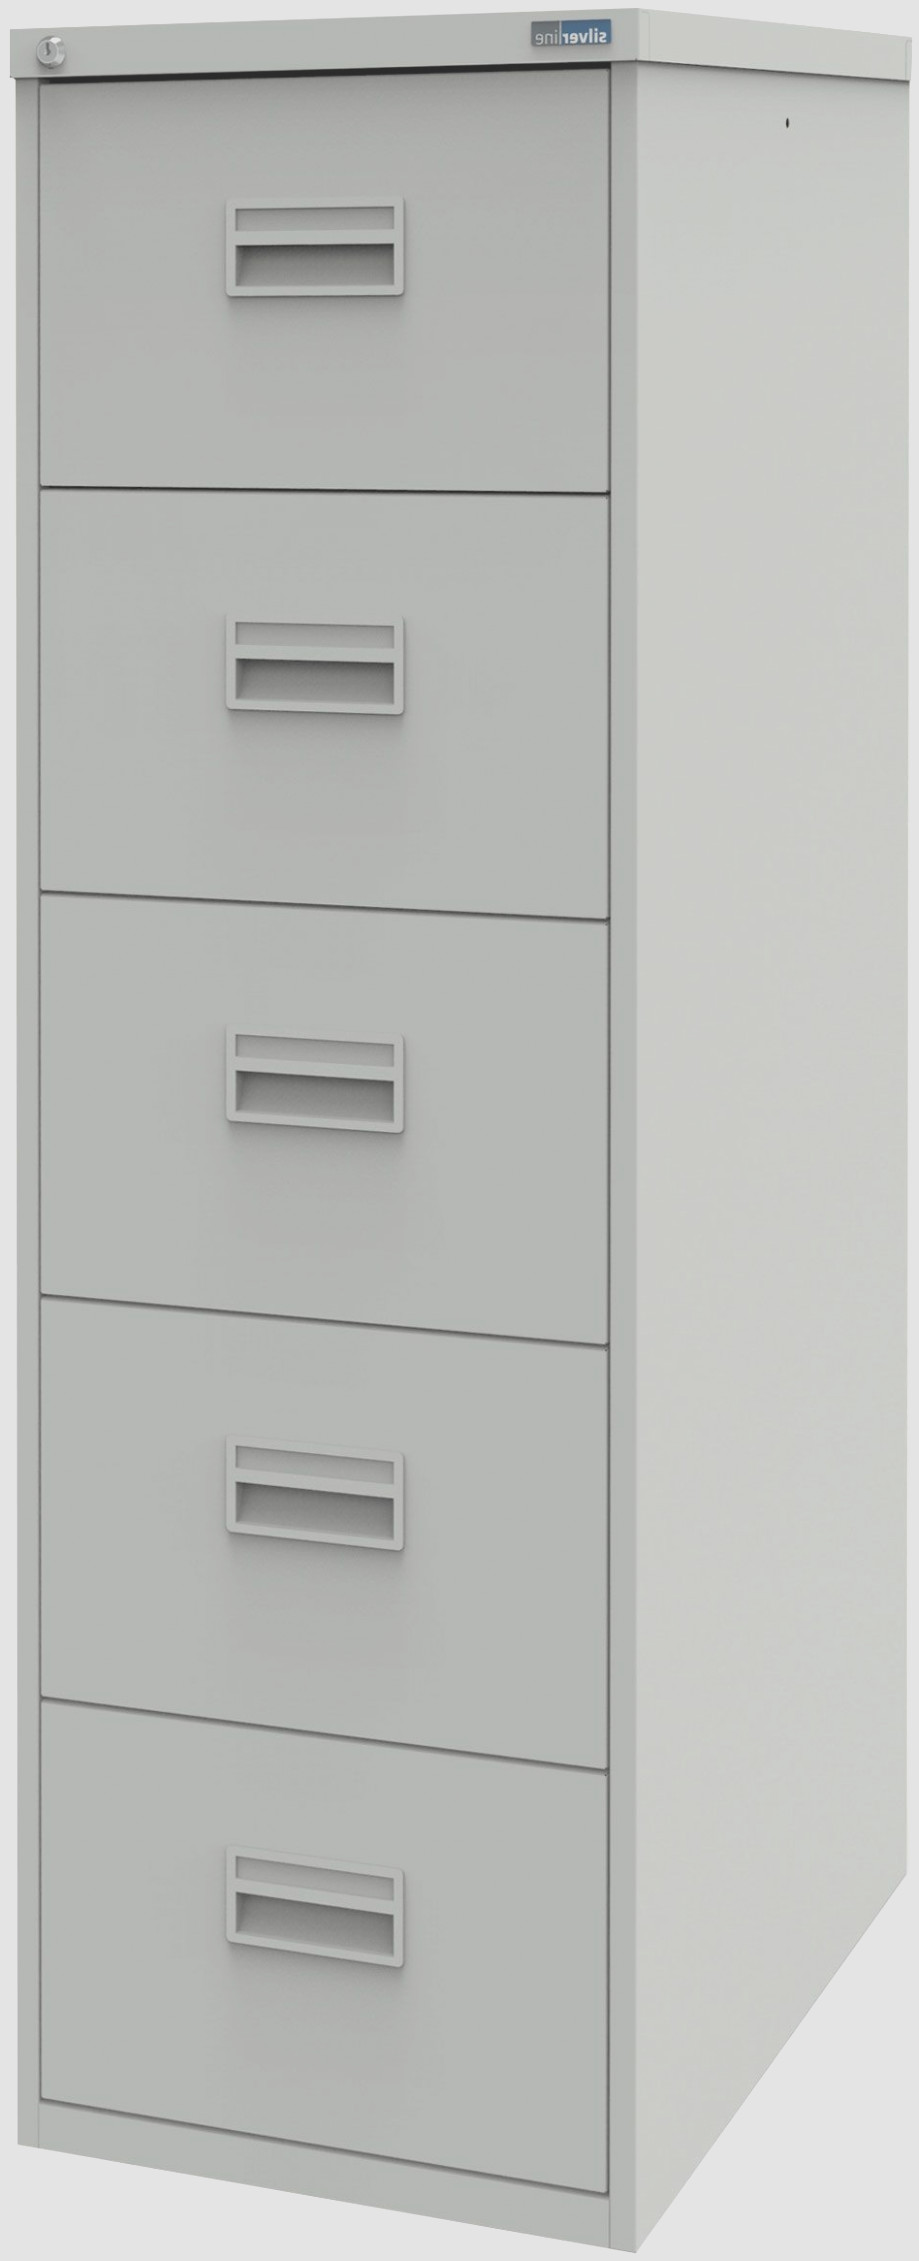 1 Drawer File Cabinet